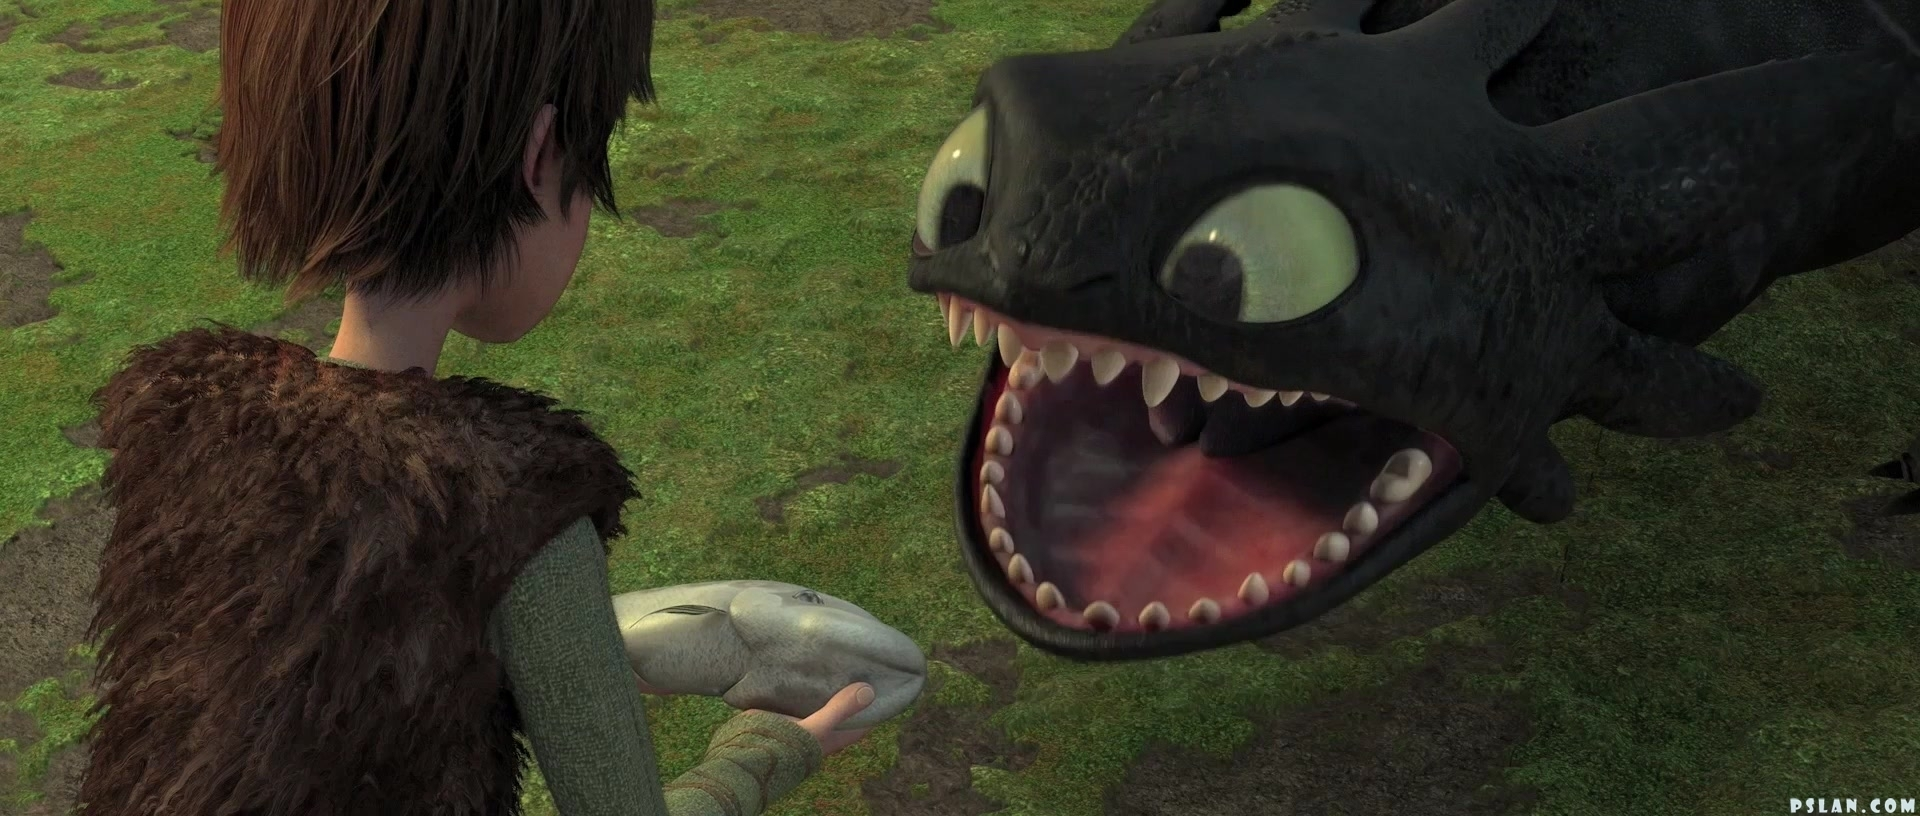 How To Train Your Dragon Toothless Smile Gif